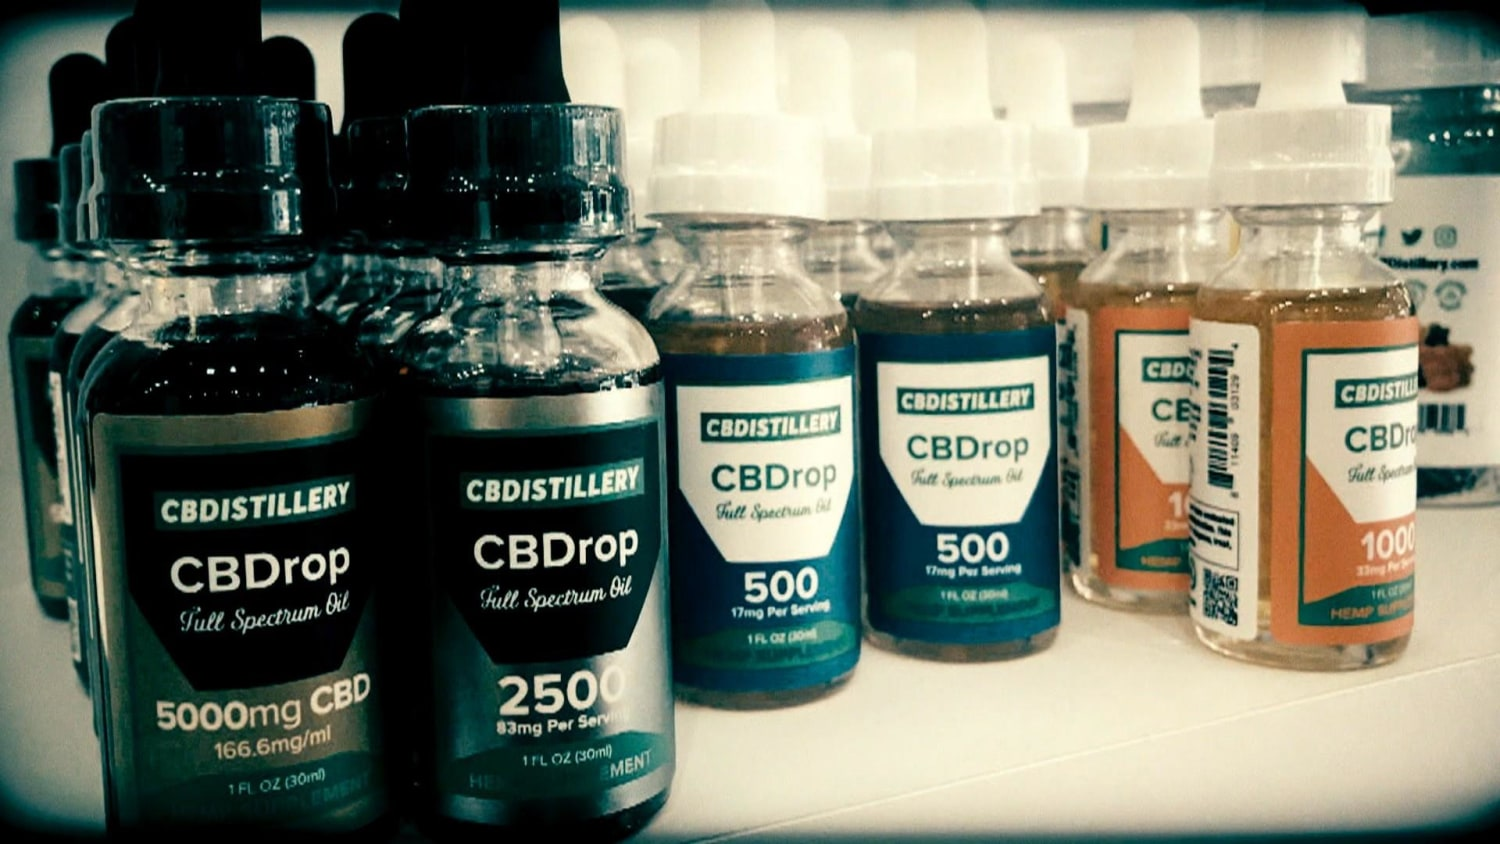 CBD products are everywhere now — but are they safe, or even legal?